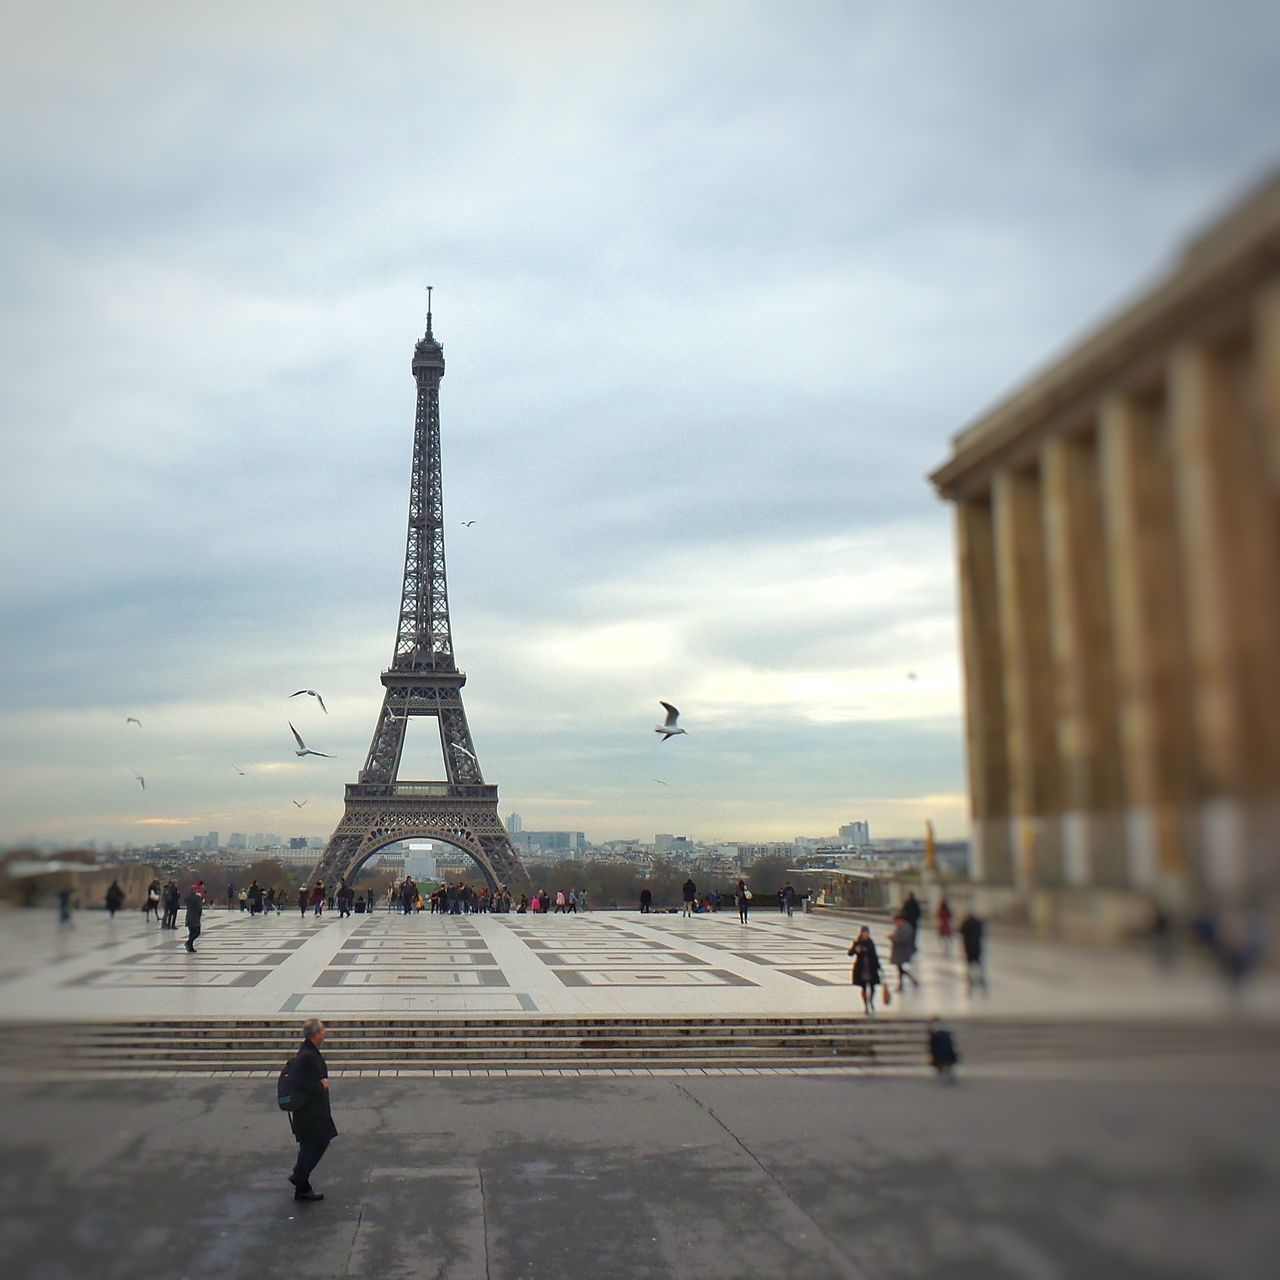 Embrace Urban Life Paris is a Seagull Flight of Freedom City Travel Destinations Cloud - Sky Sky Cityscape People Outdoors City Town Monuments Of The World Streetphotography Monuments France Fragility Happiness Autumn My Year My View Autumn Colors Cold Temperature Light And Shadow